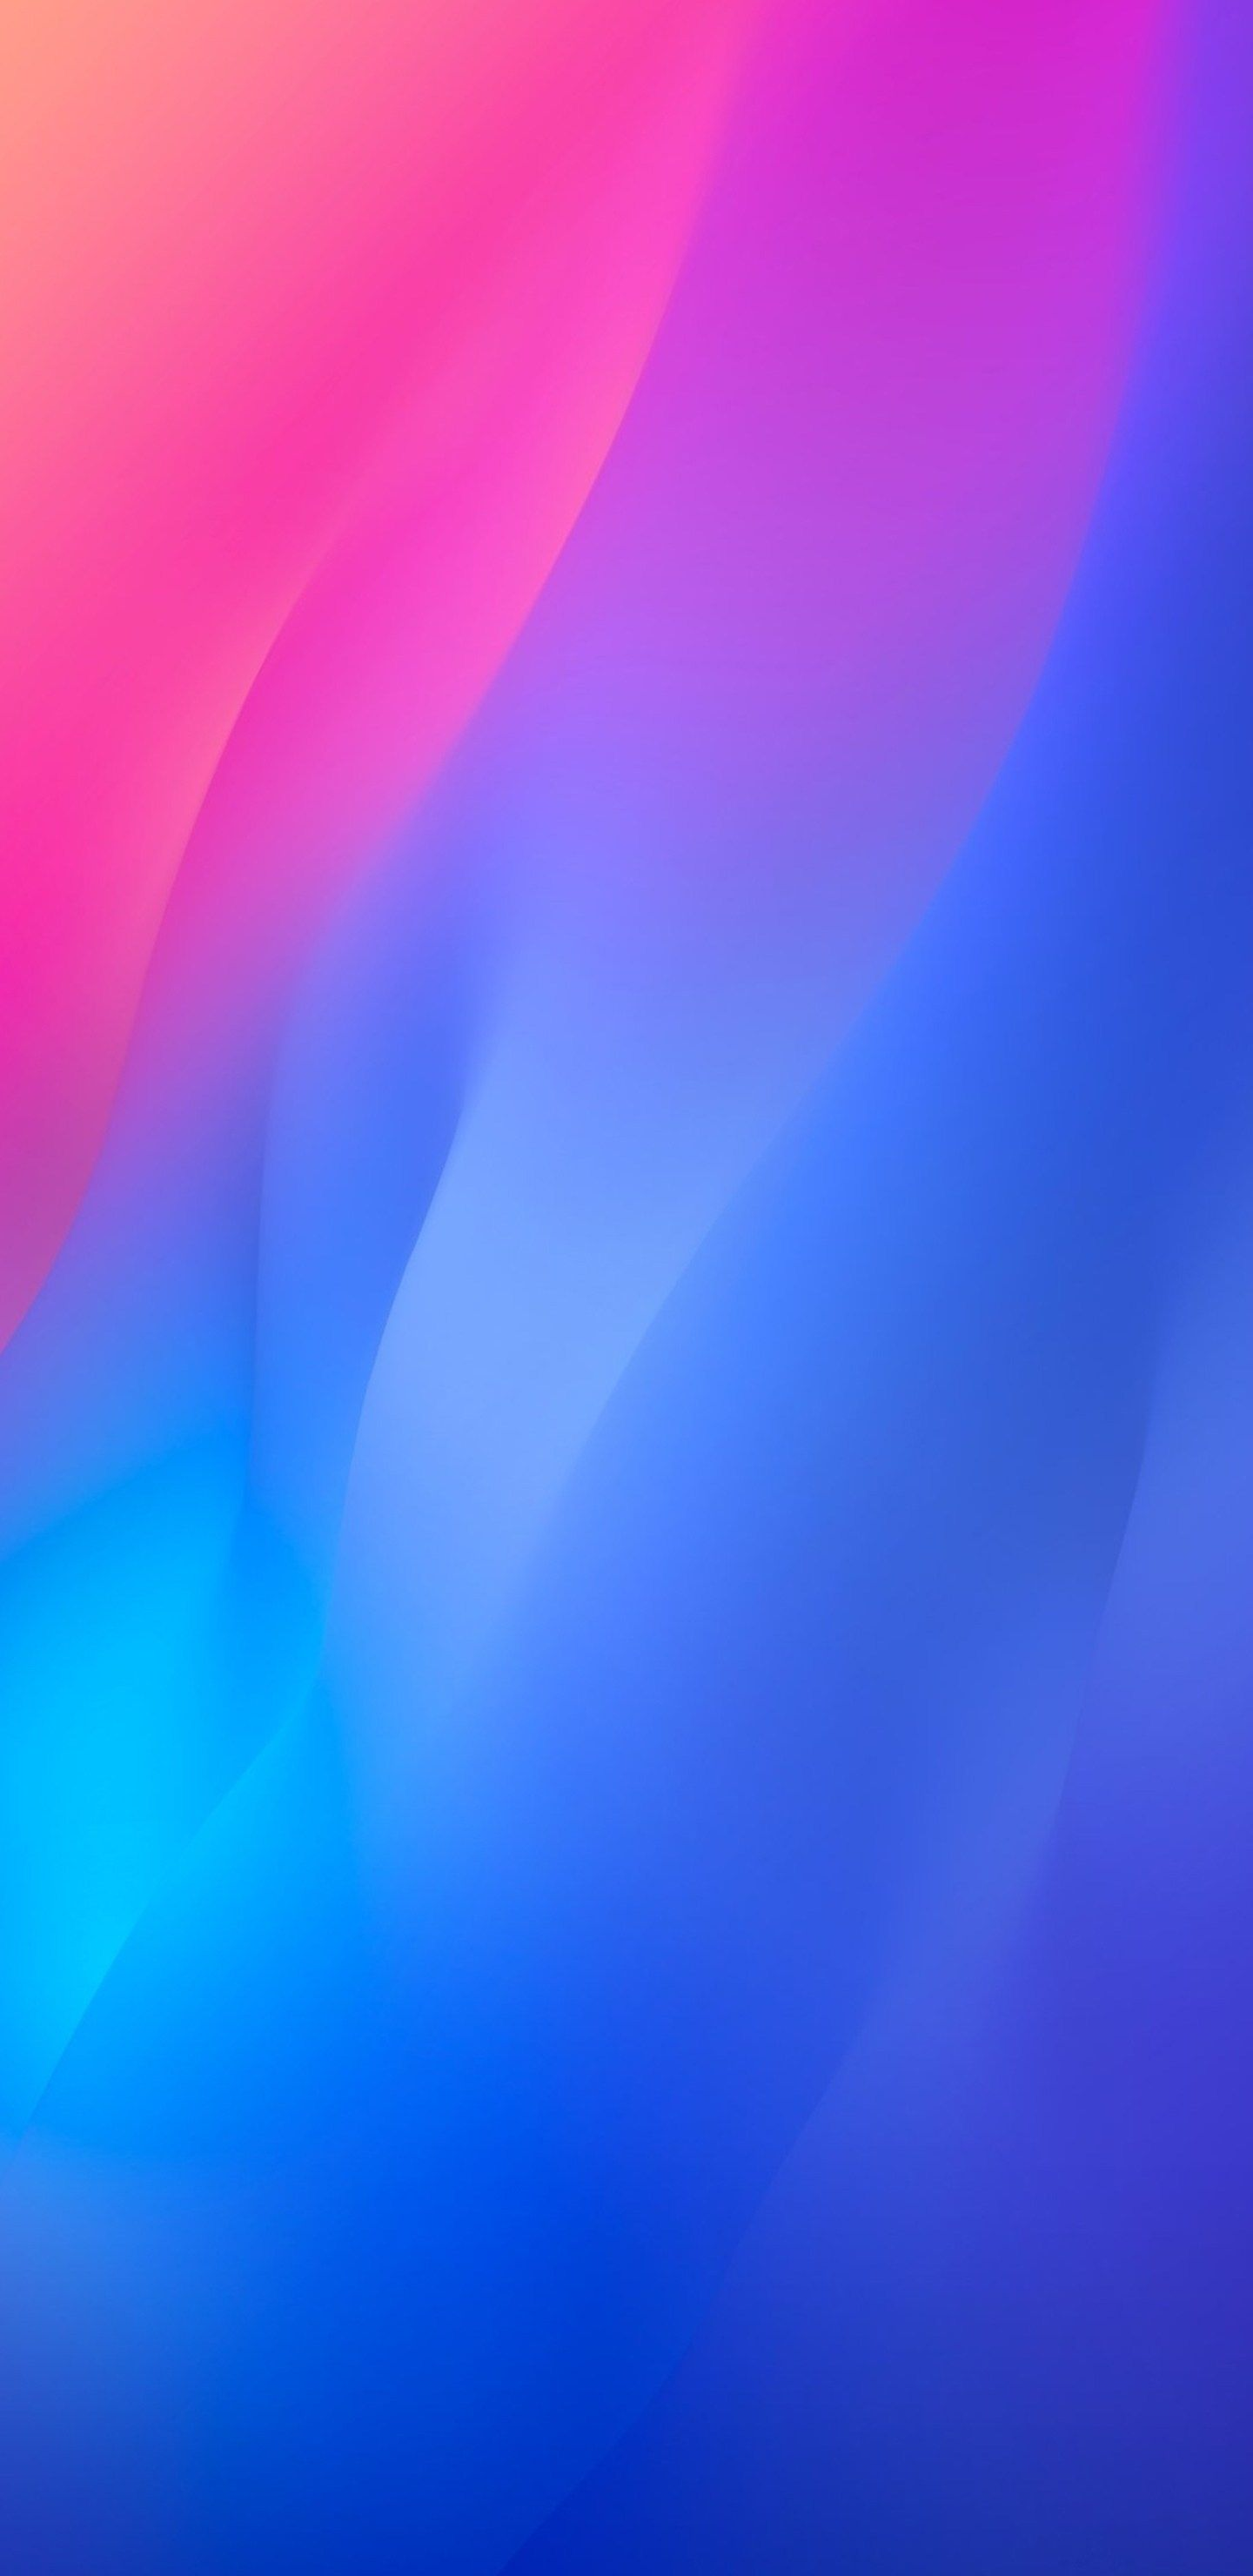 Colorful Abstract Background For Samsung Galaxy S9 And S9 In Red And Blue Hd Wallpapers Wallpapers Download High Resolution Wallpapers In 2020 Background Hd Wallpaper Samsung Wallpaper Hd Wallpaper Android